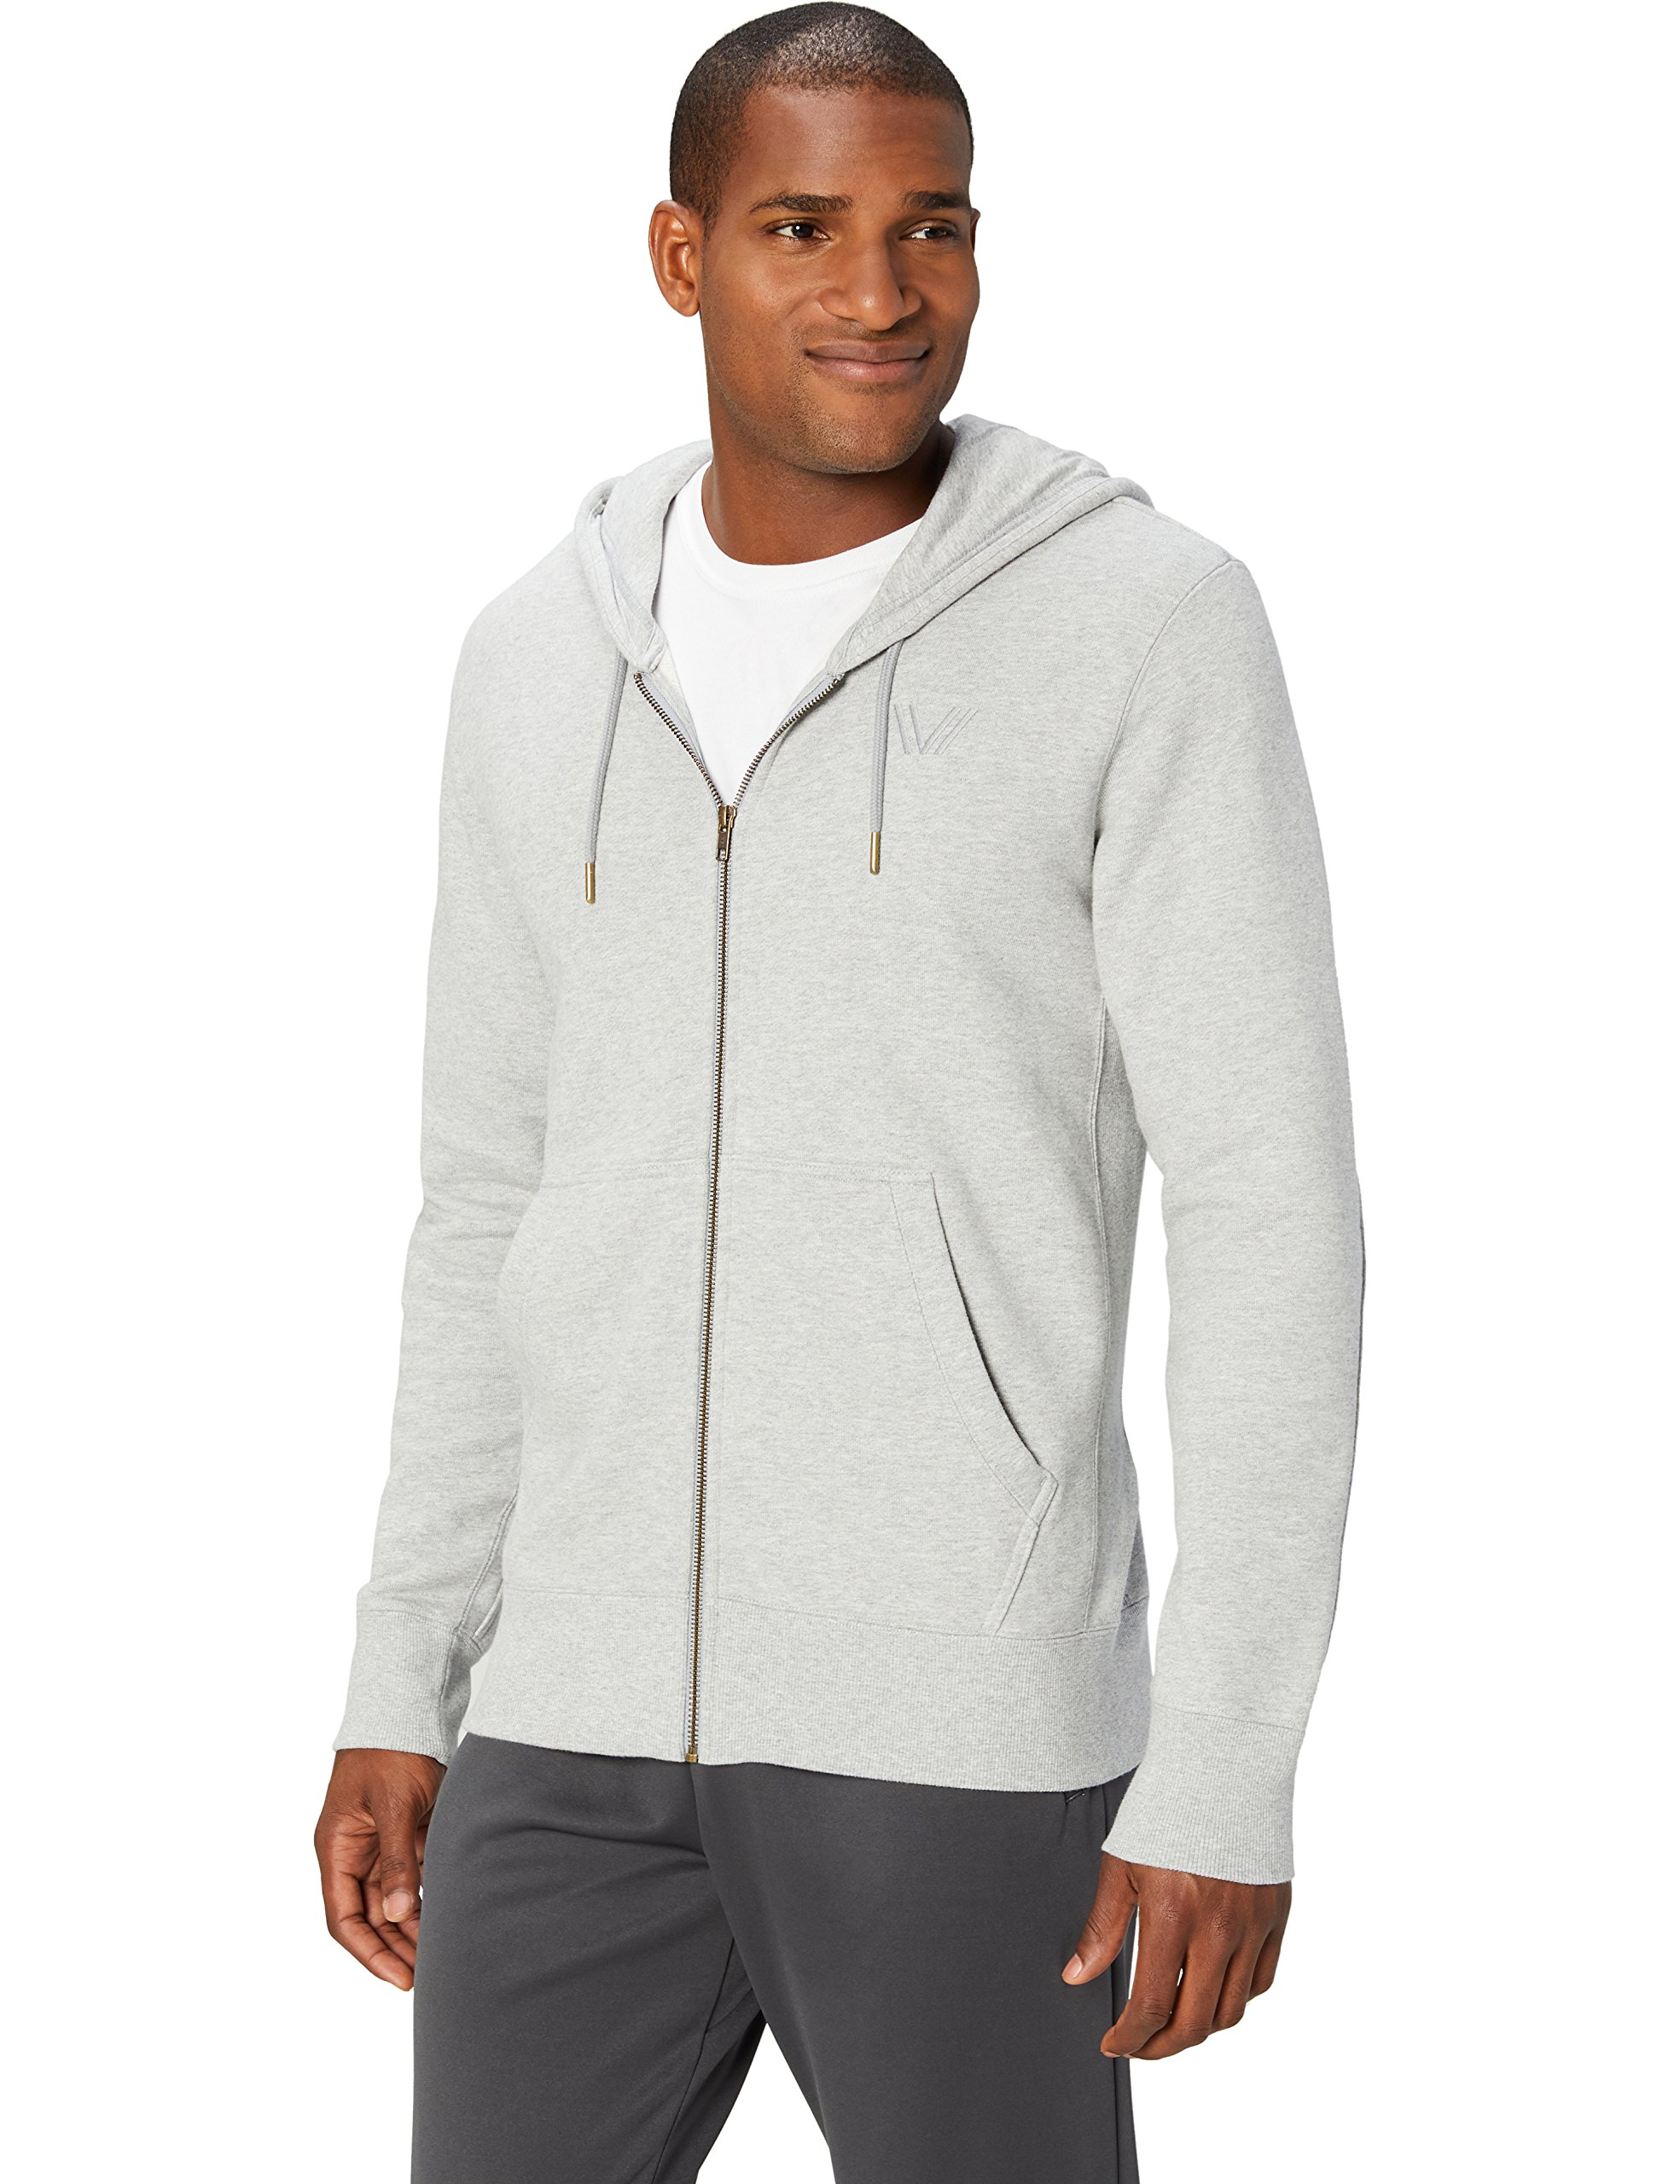 Brand Peak Velocity Mens Quantum Fleece Full-Zip Loose-Fit Hoodie